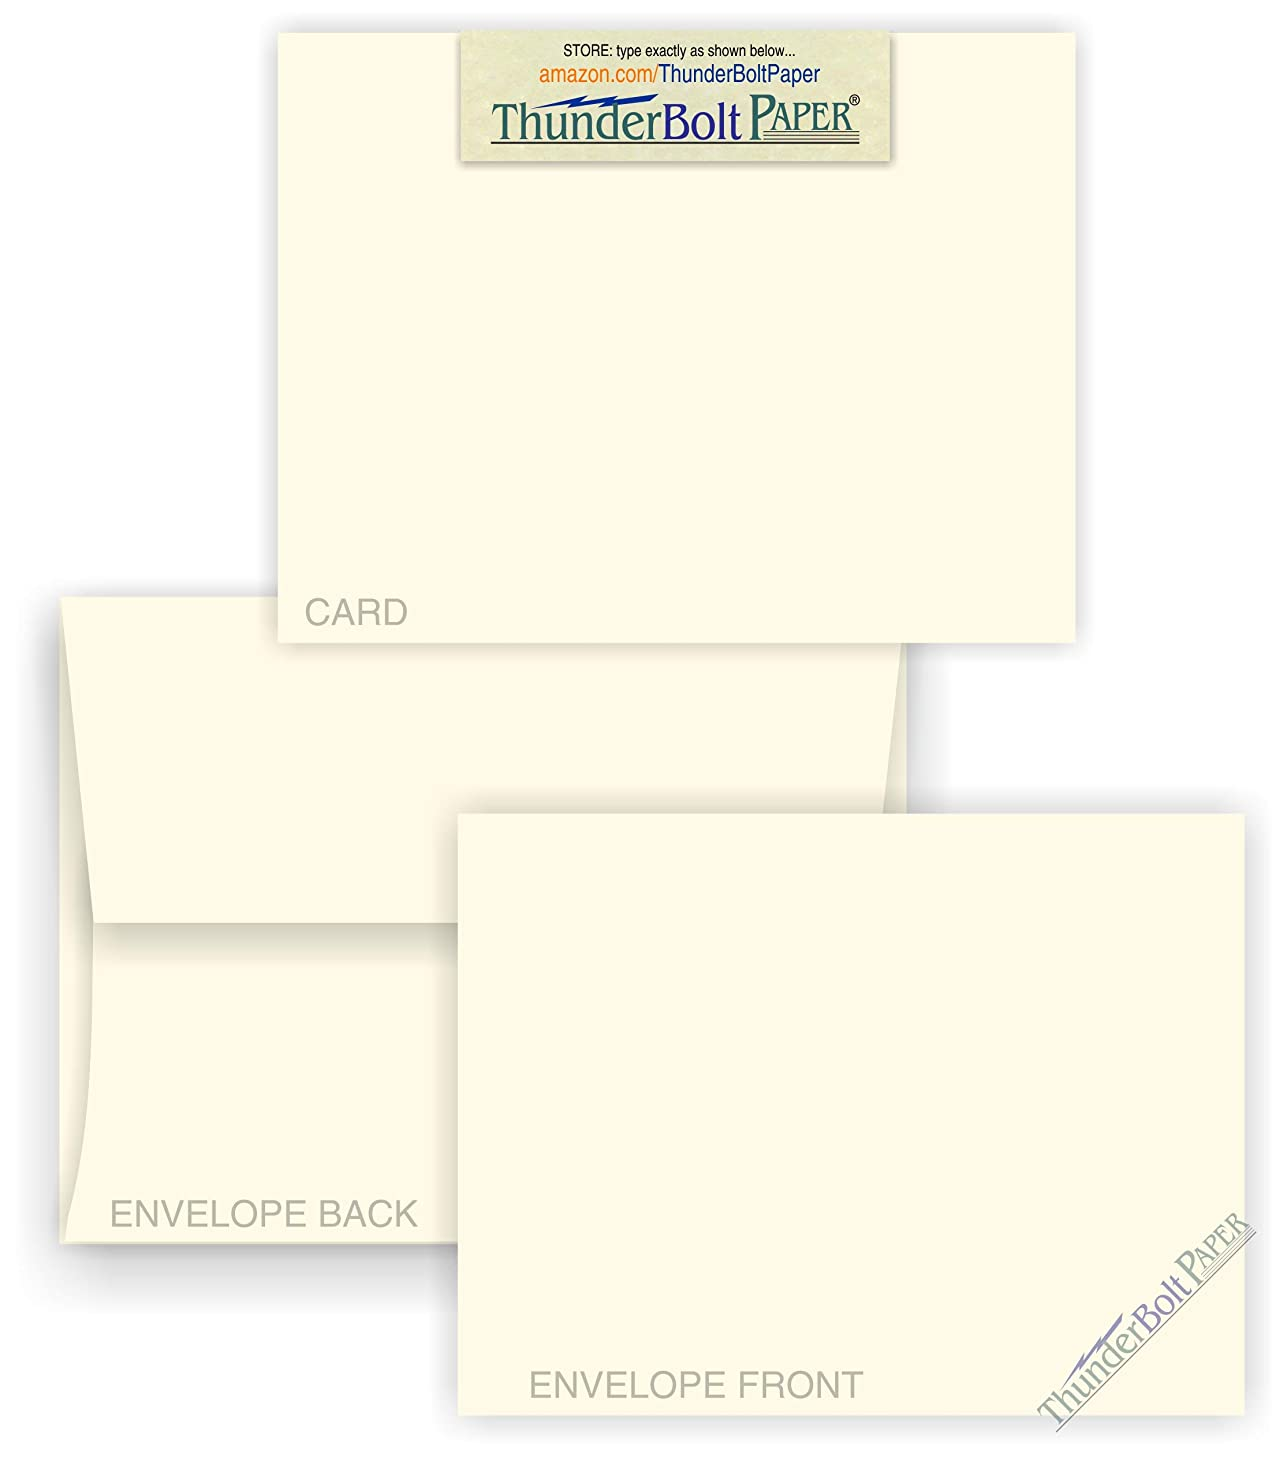 5X7 Blank Cards with A-7 Envelopes - Smooth Natural White - 15 Sets - Silky Finish - Invitations, Greeting, Thank Yous, Notes, Holidays, Weddings, Birthdays, Announcements - 80# Cardstock